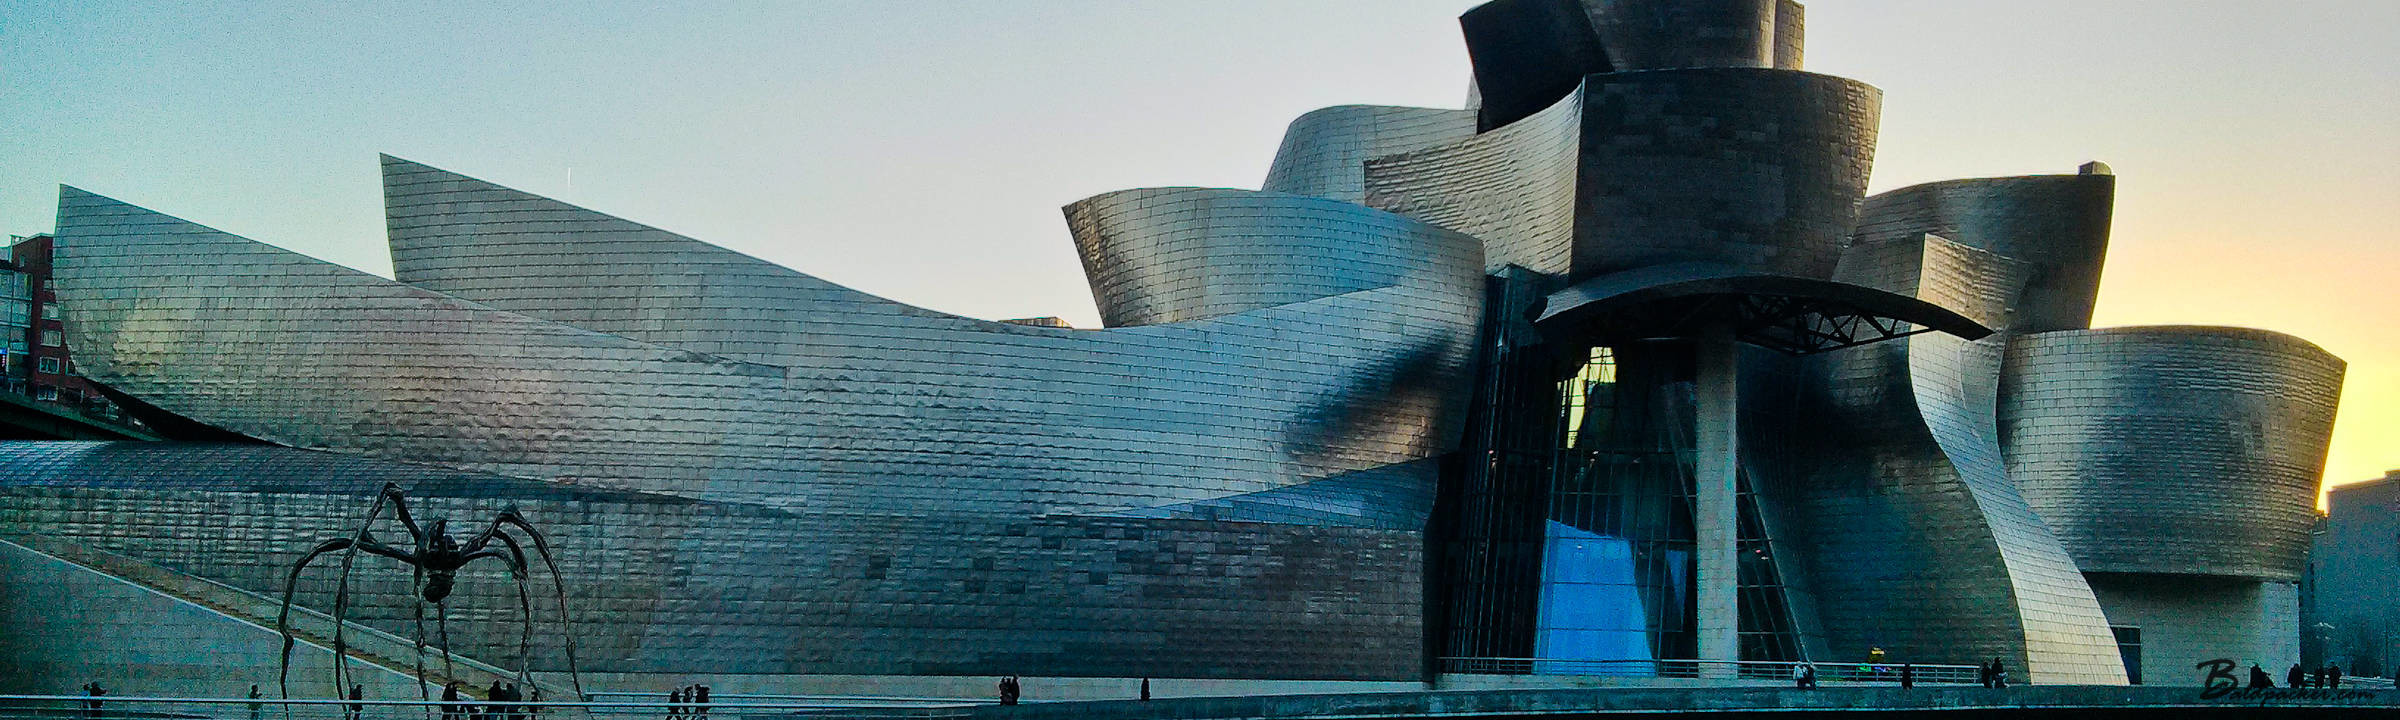 Two Days in Bilbao, Spain